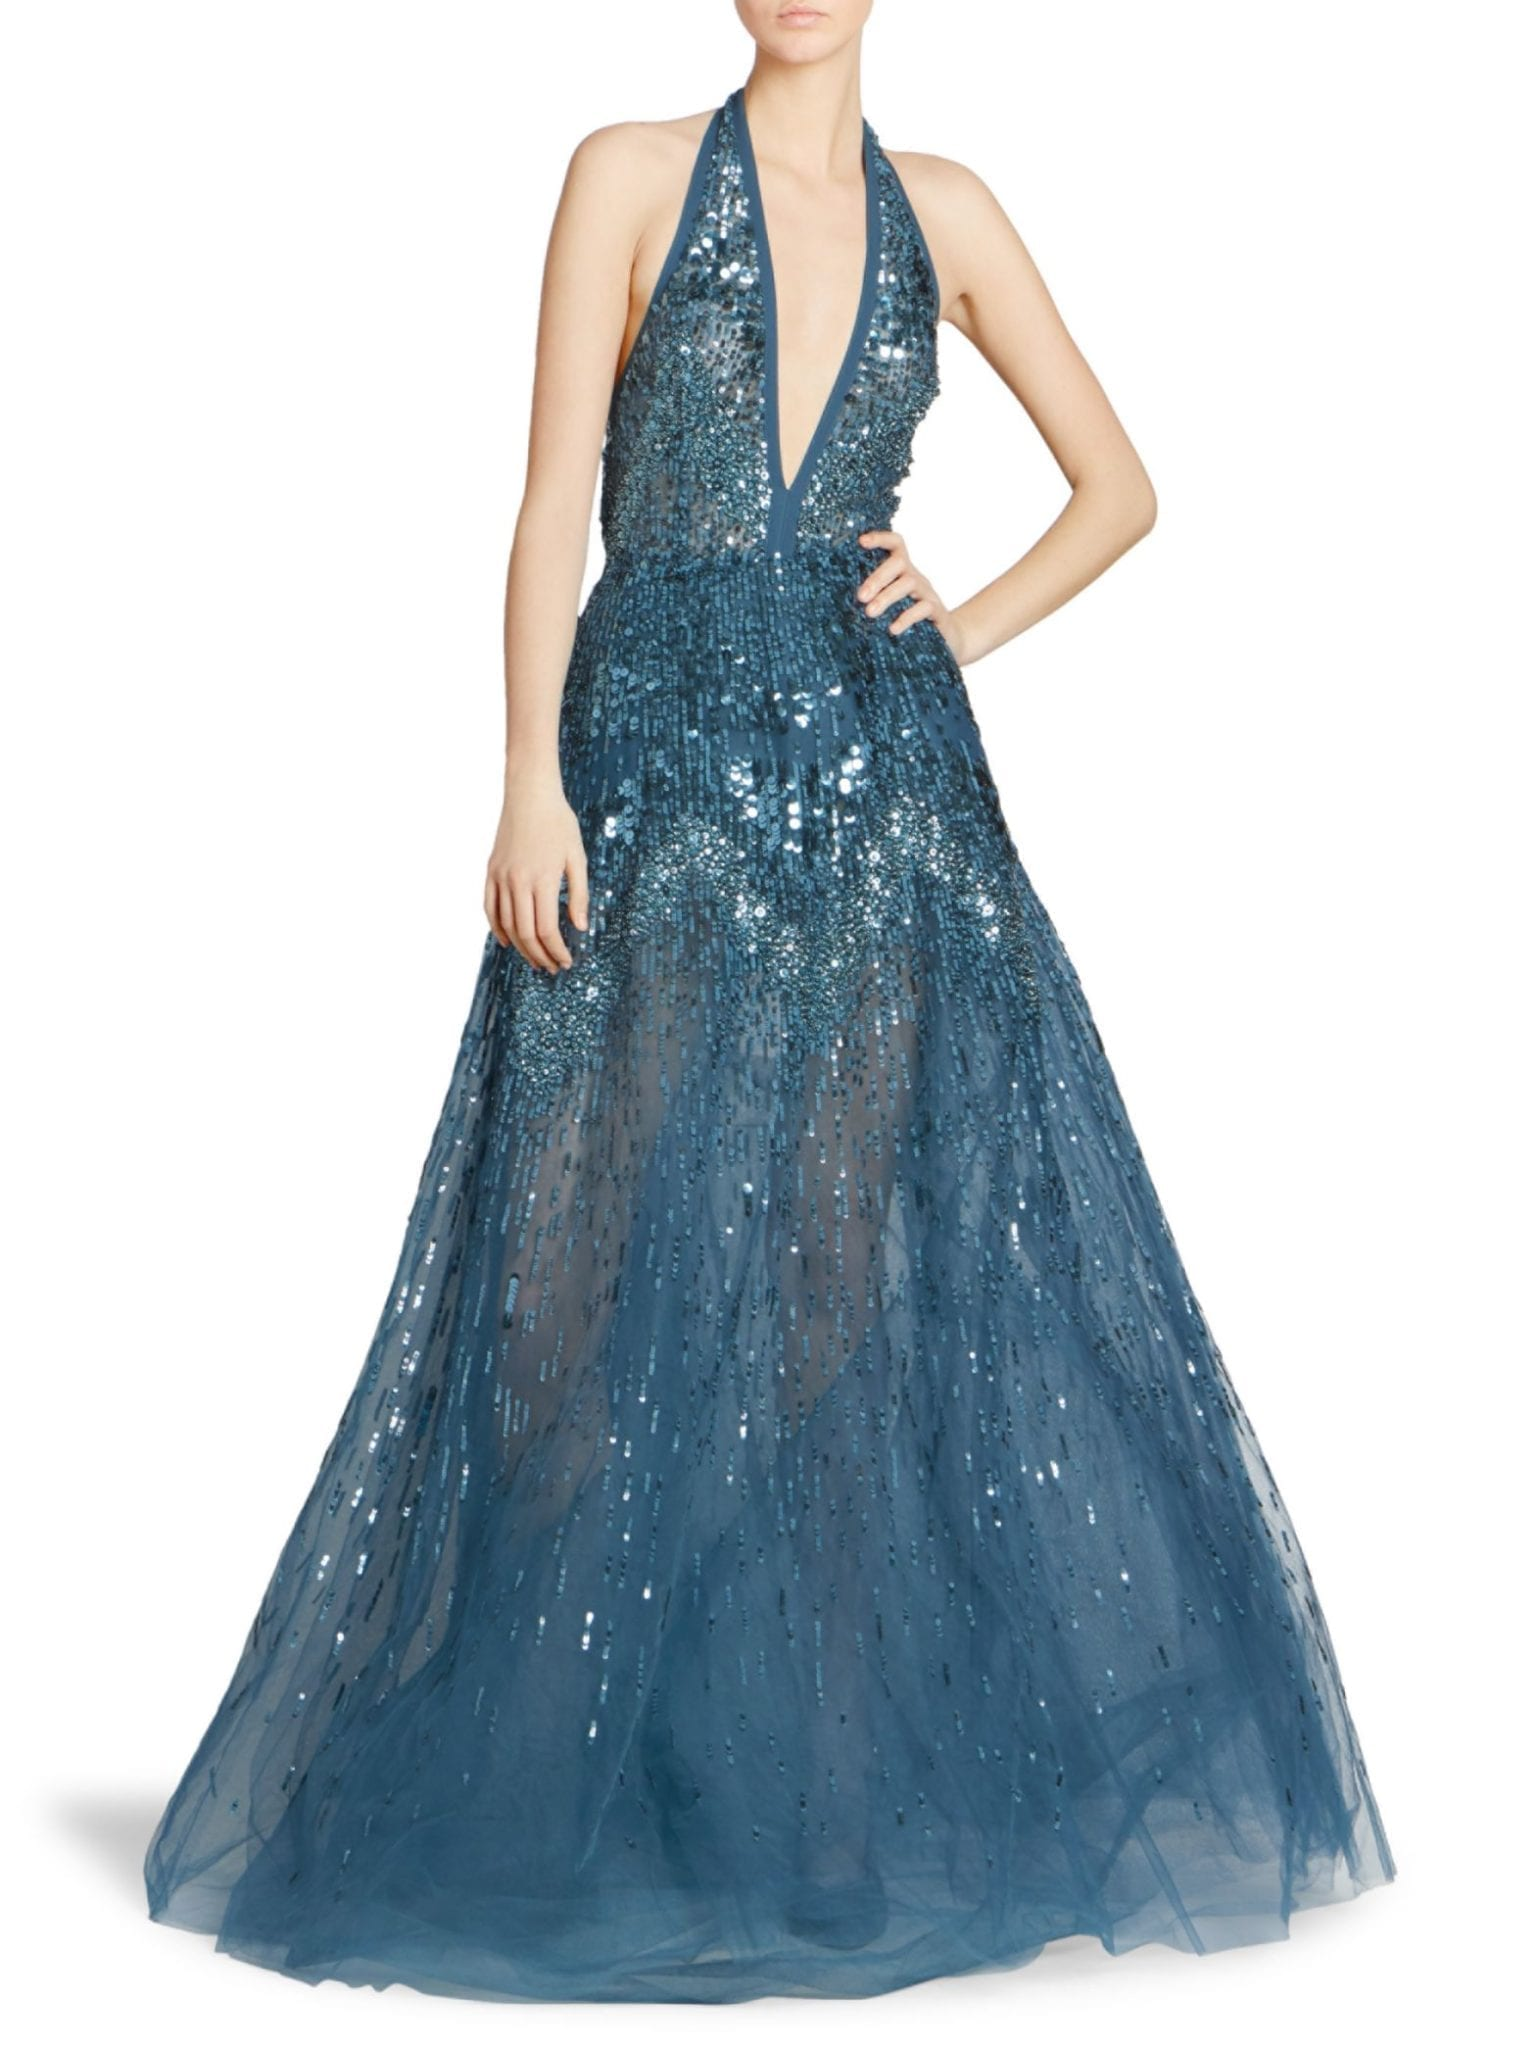 ELIE SAAB Sequin Halter Ball Blue Gown